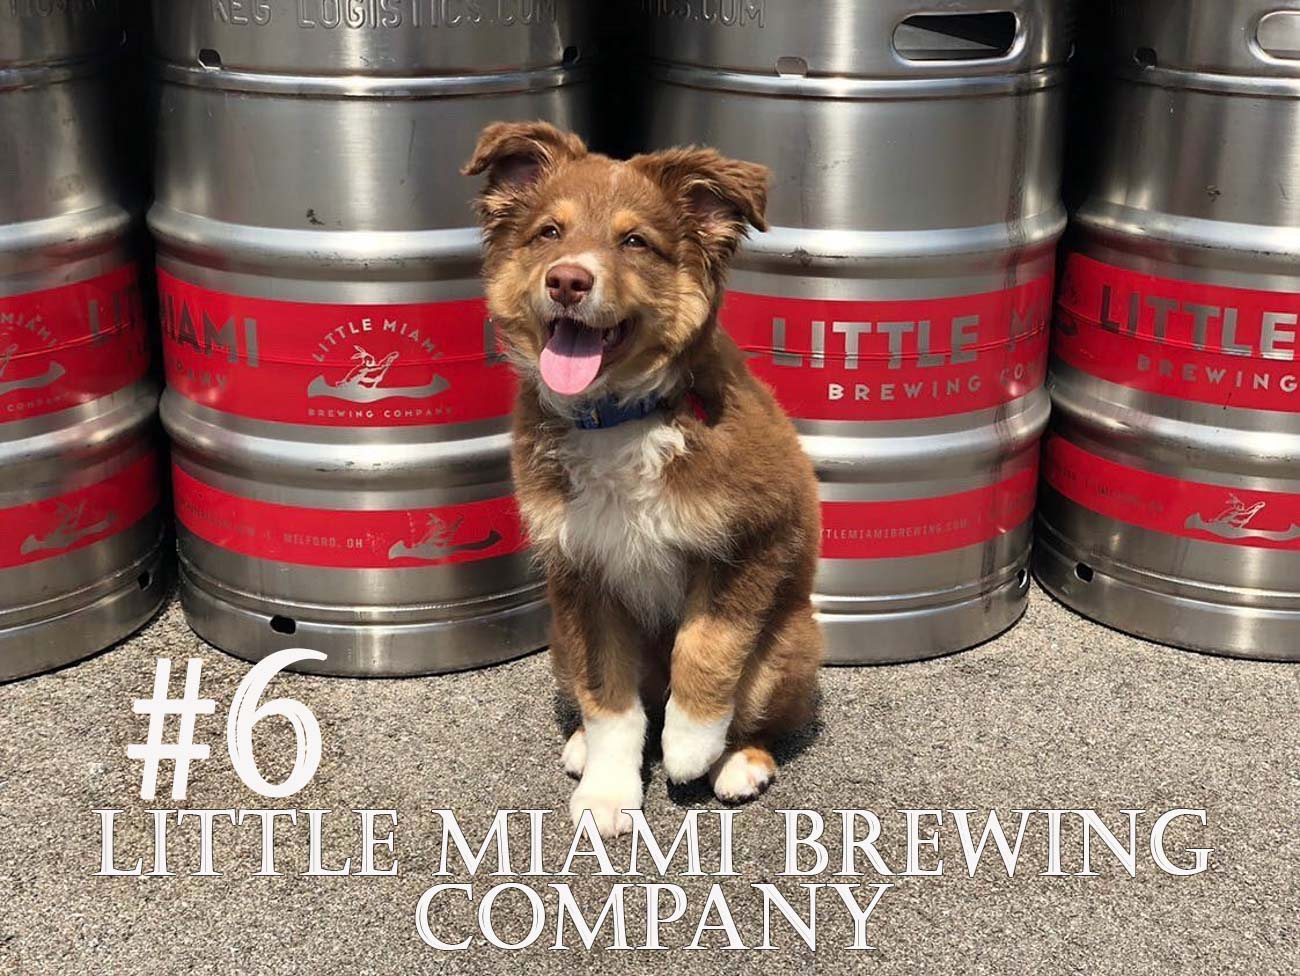 Need a taproom stop? Little Miami Brewing Company is a seven-barrel brewery that offers brick oven pizzas to pair with your craft beer. You'll find it along the Little Miami River and Bike Trail at the edge of Old Milford. ADDRESS: 208 Mill Street, Milford, OH (45150) / Background image courtesy of Instagram user @littlemiamibrew   via Discover Clermont // Published: 11.28.20